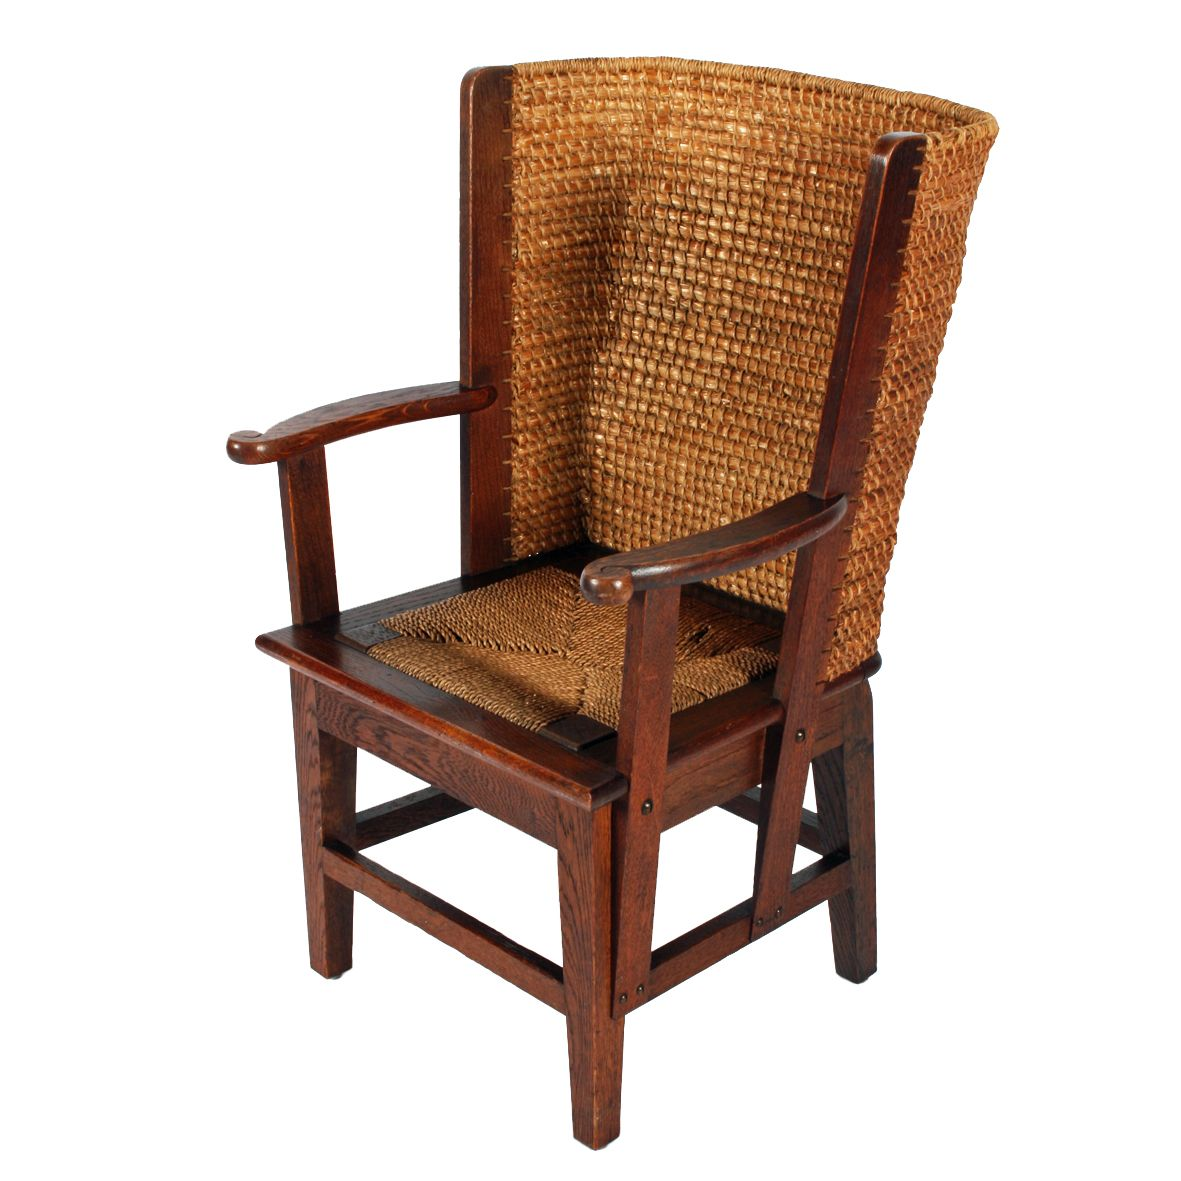 Lady's Oak Orkney Chair | Antique chairs and Victorian